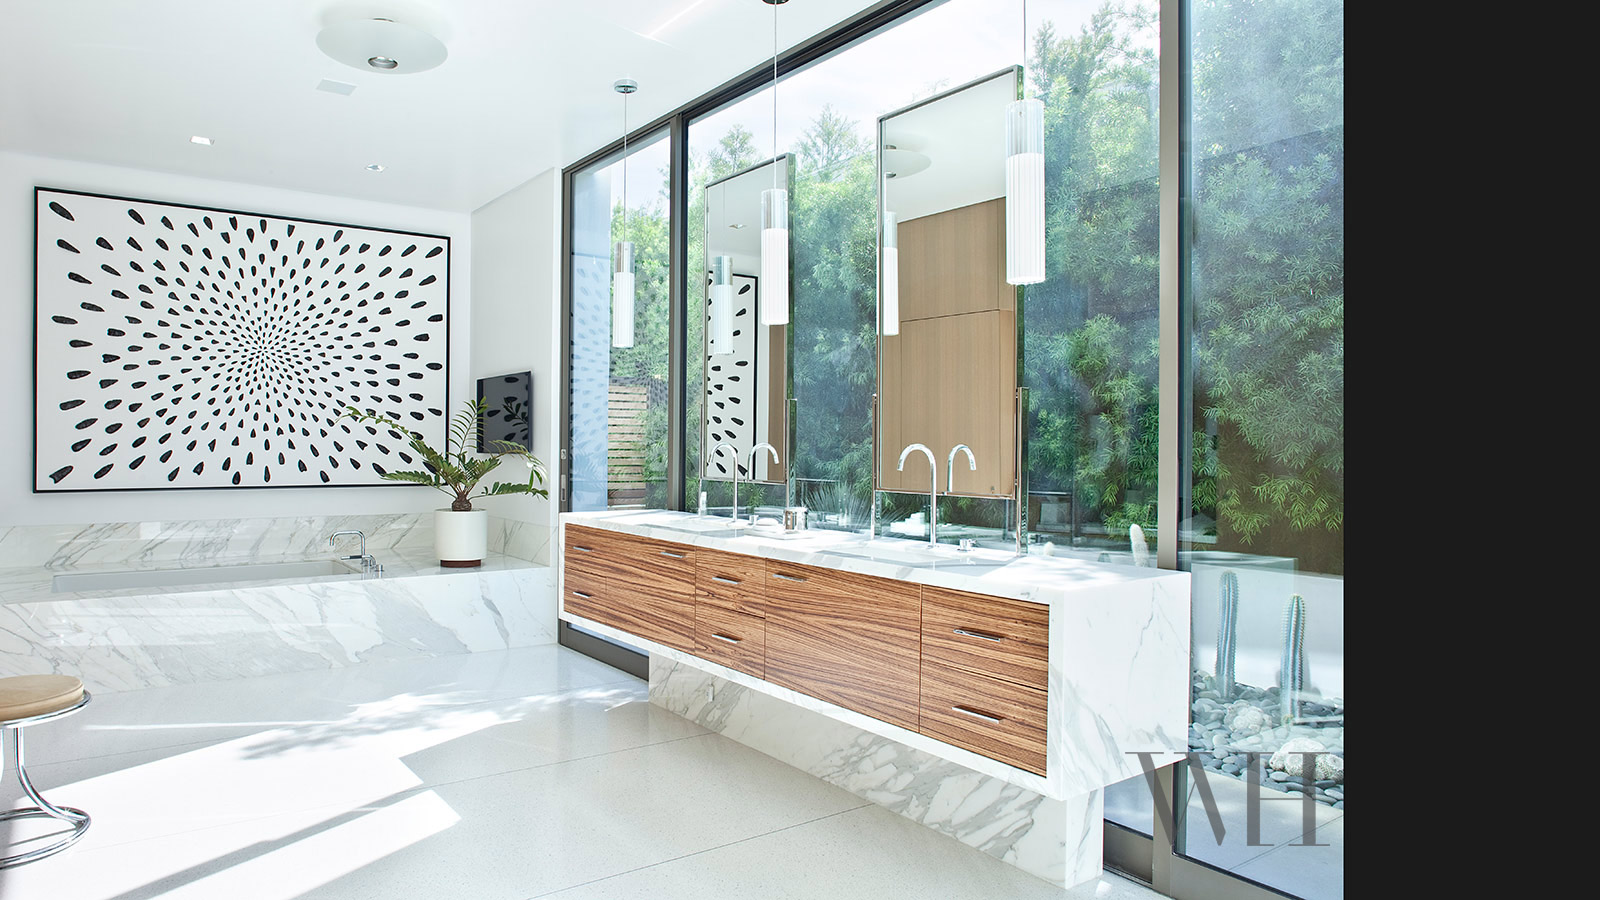 Awesome Bathroom Design - Hillside california home with gorgeous outdoor spaces